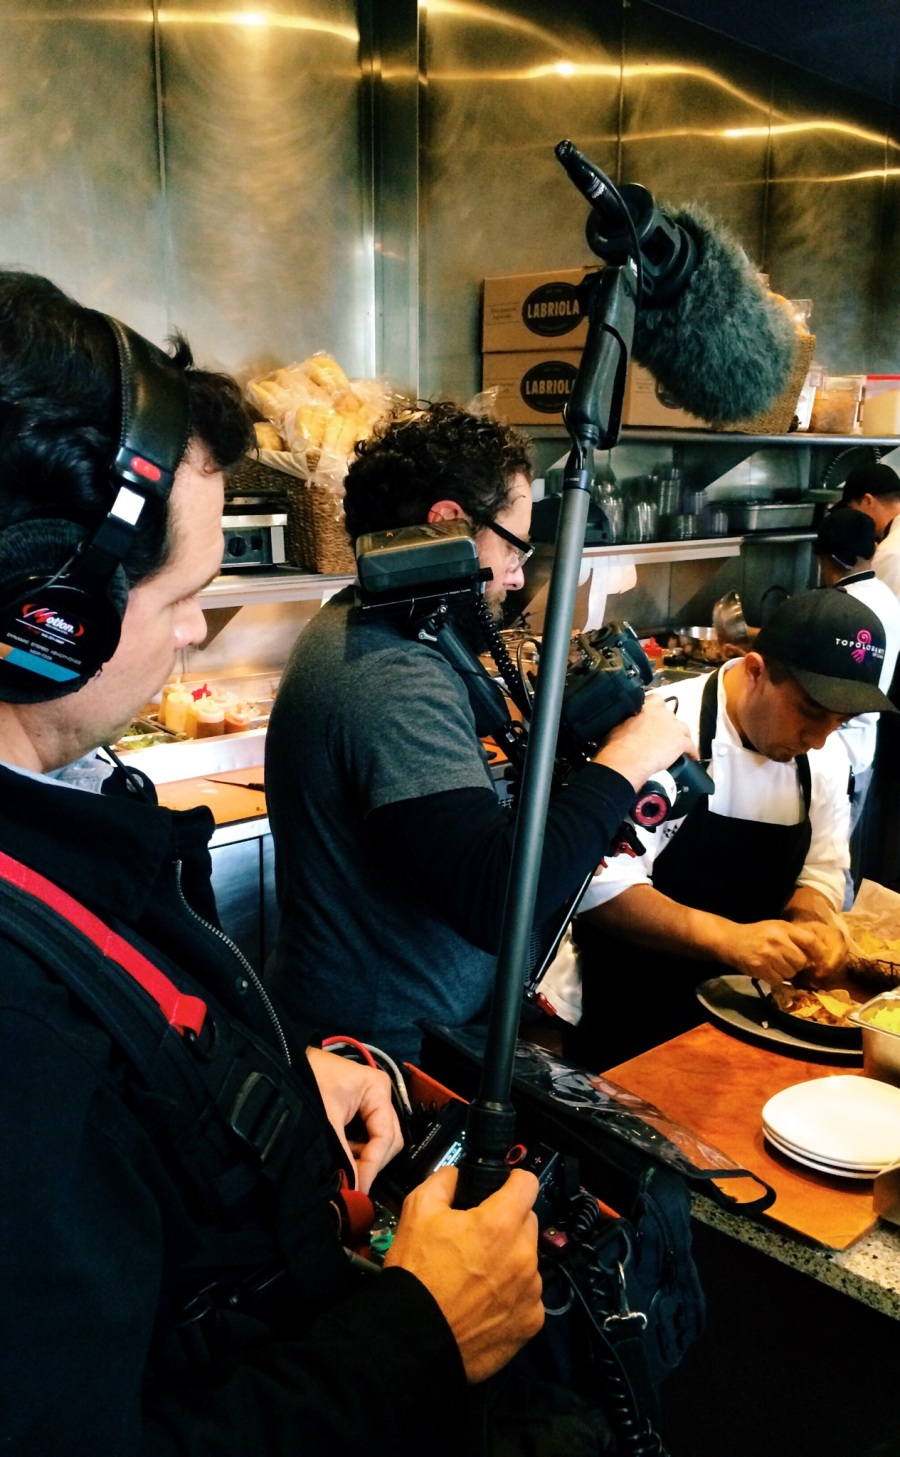 Xoco Chicago chef Alonso alfonso sotelo day of gluttony filming new tv show